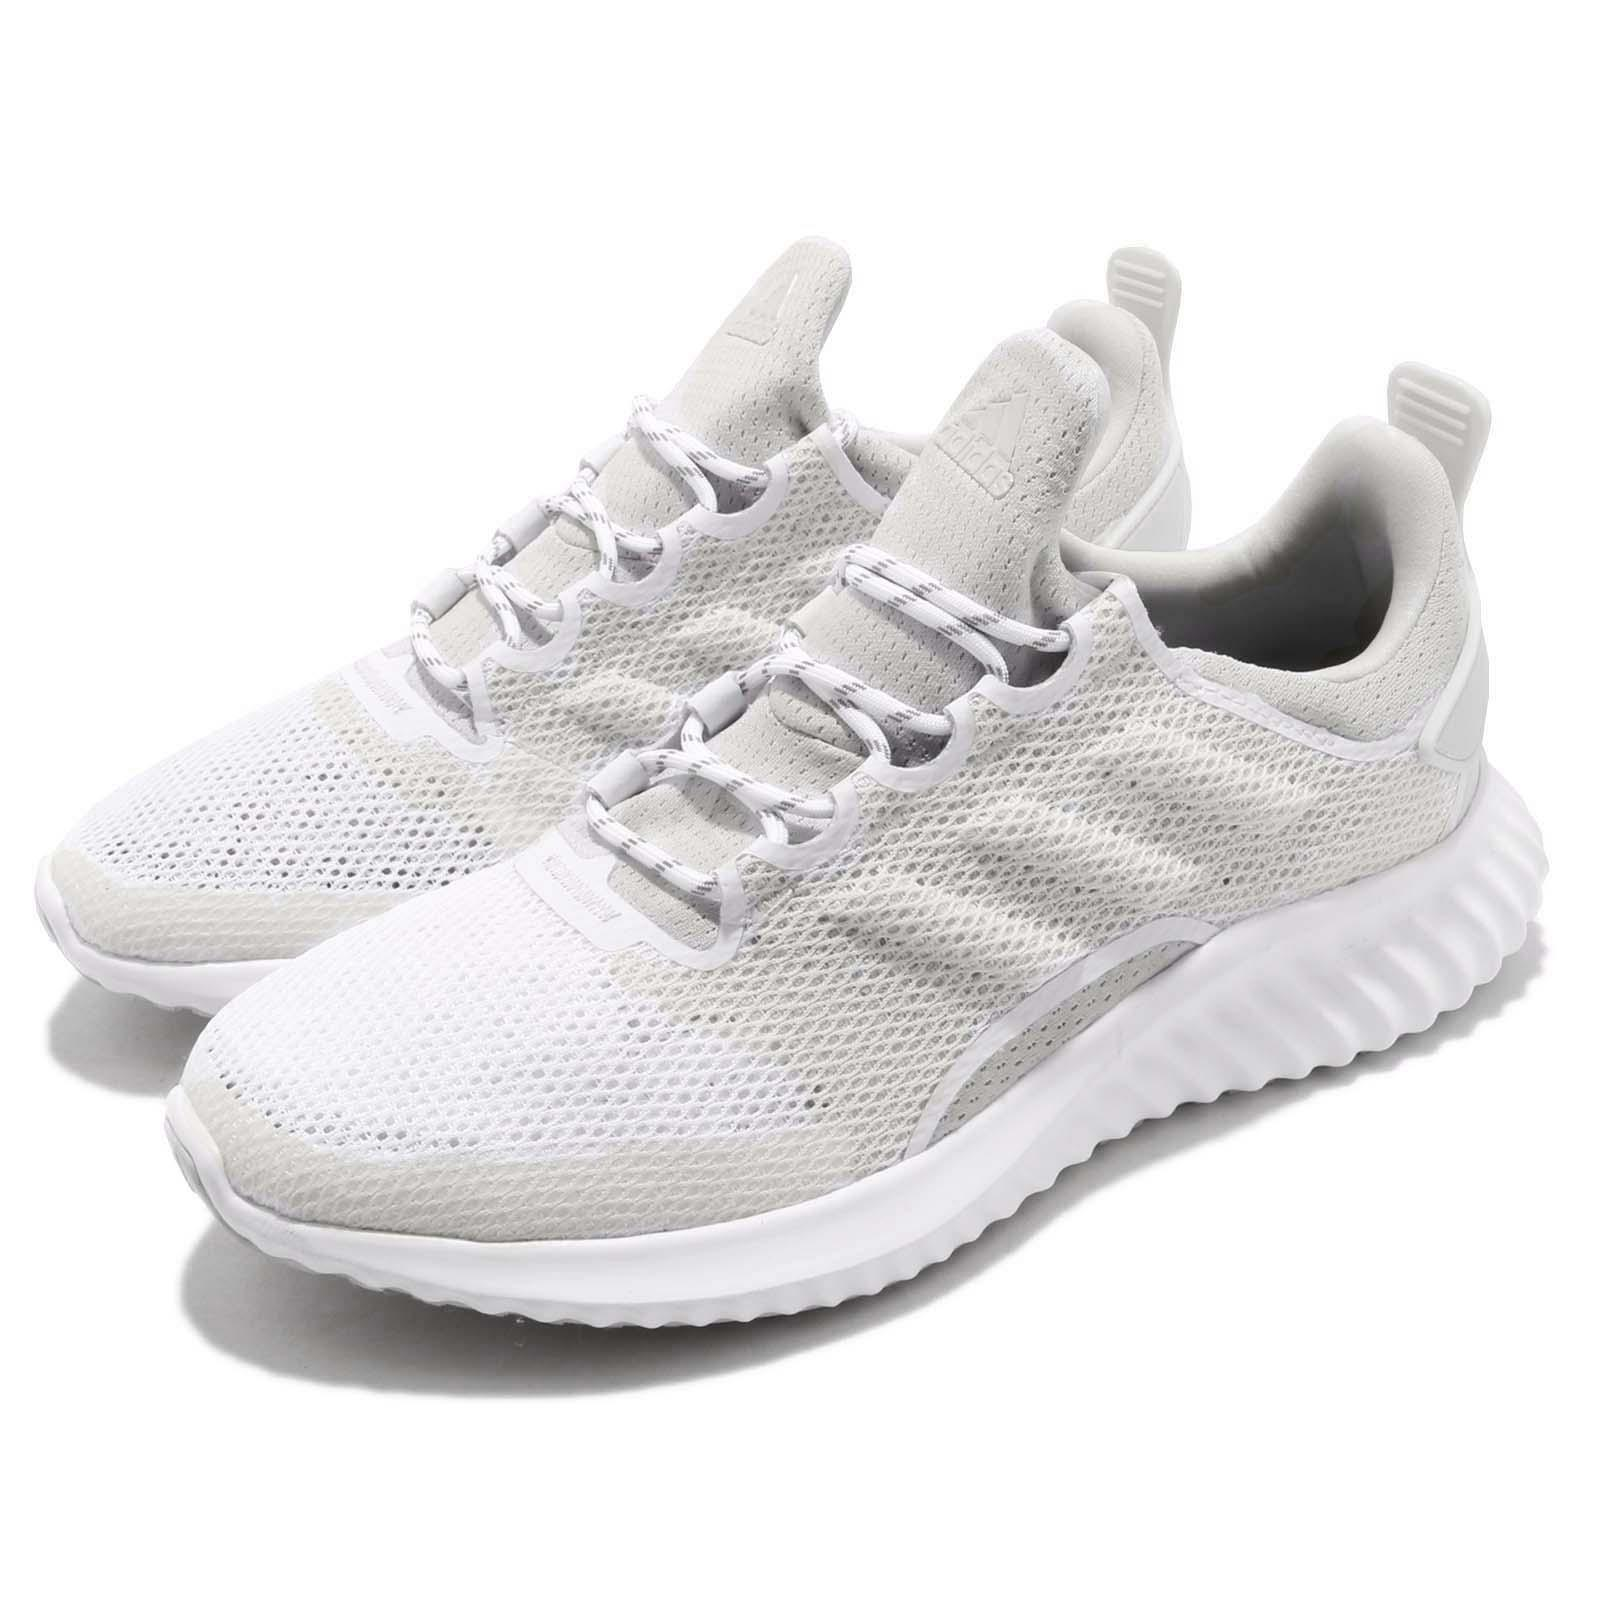 8638f7c17d73 Details about adidas Alphabounce CR CC W White Grey BOUNCE Womens Running  Shoes B76043